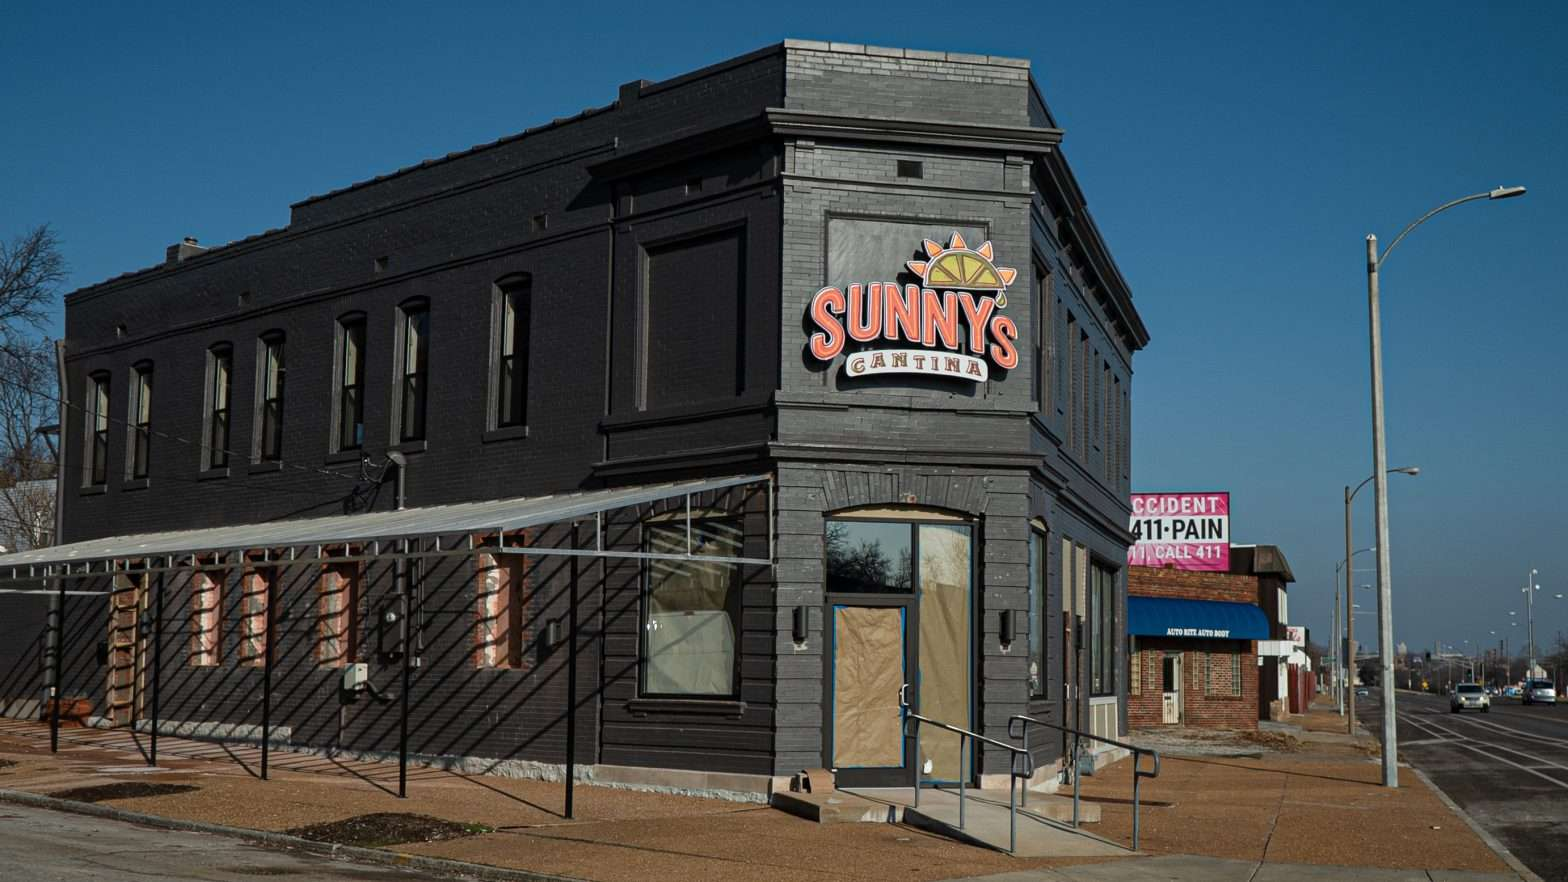 Sunny Cantina Mexican Restaurant on Manchester Avenue in the Dogtown neighborhood of St. Louis.